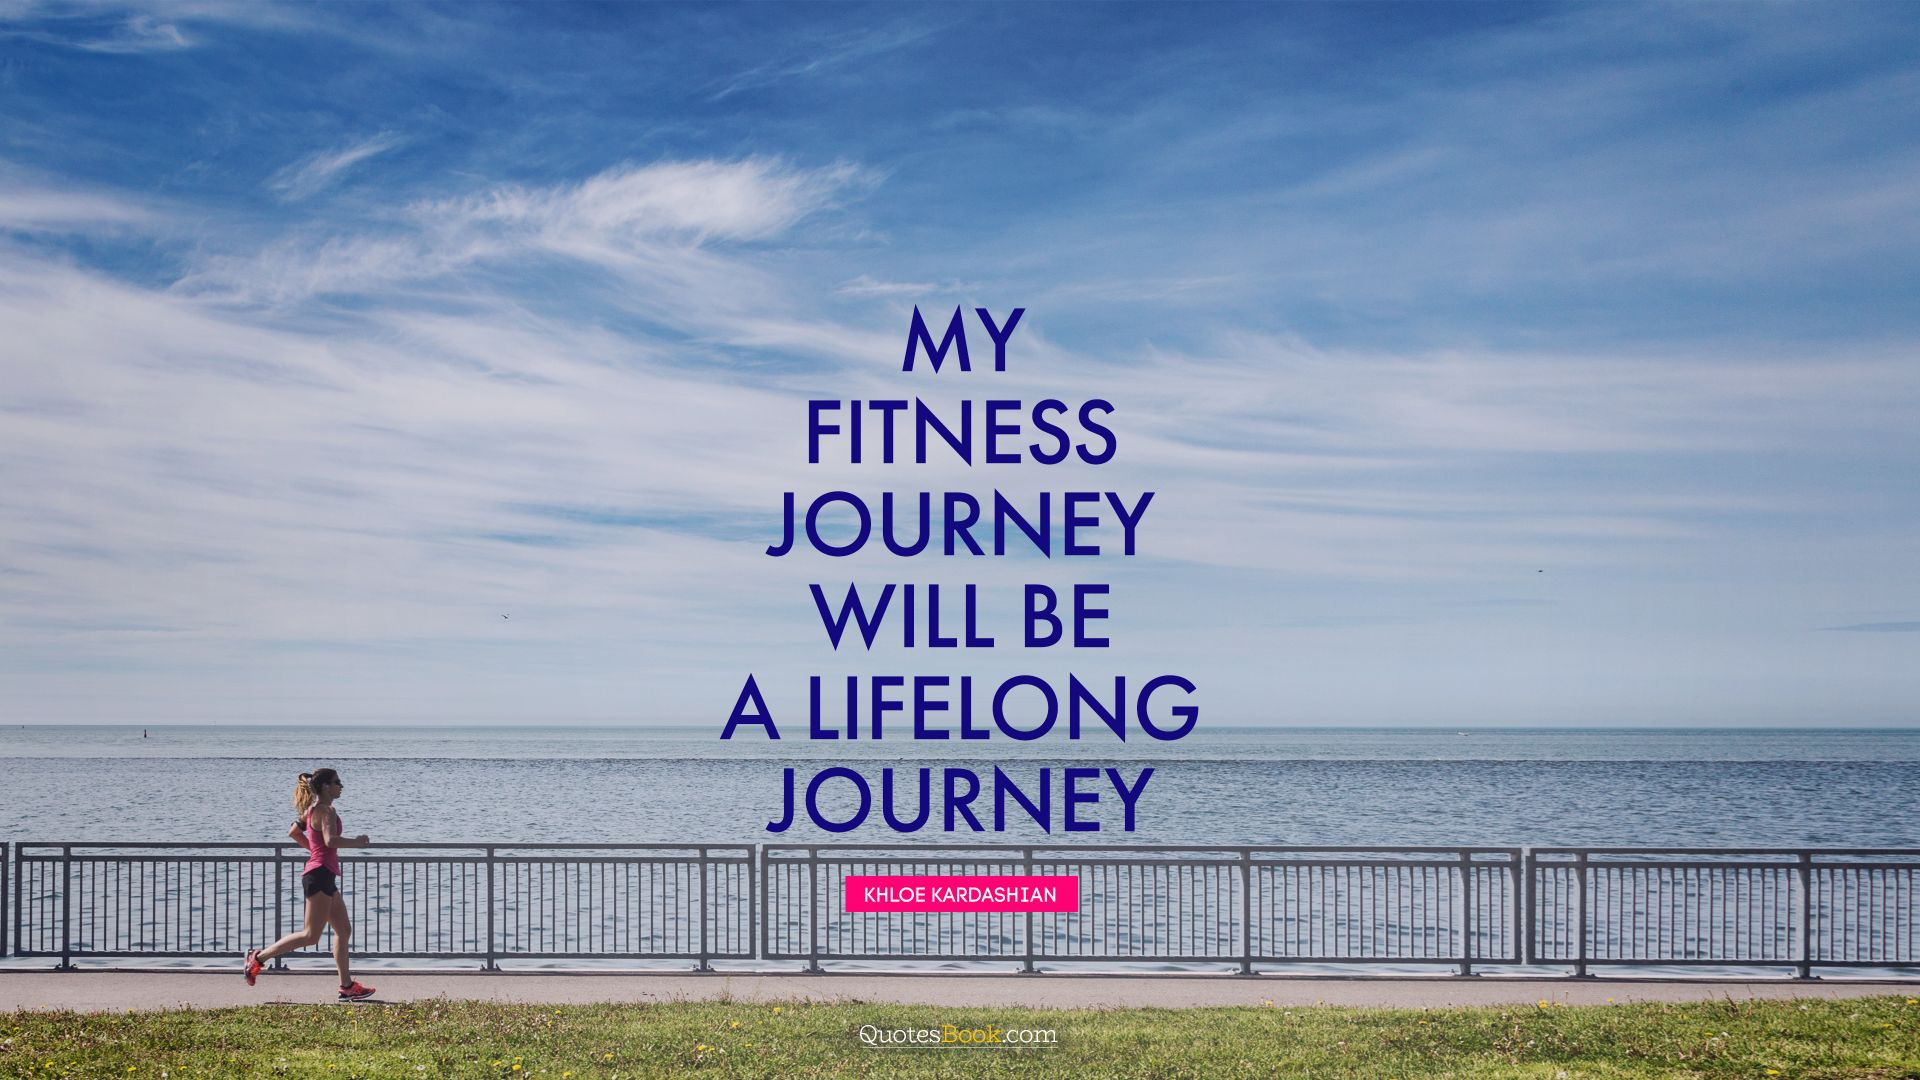 My fitness journey will be a lifelong journey. - Quote by Khloe Kardashian